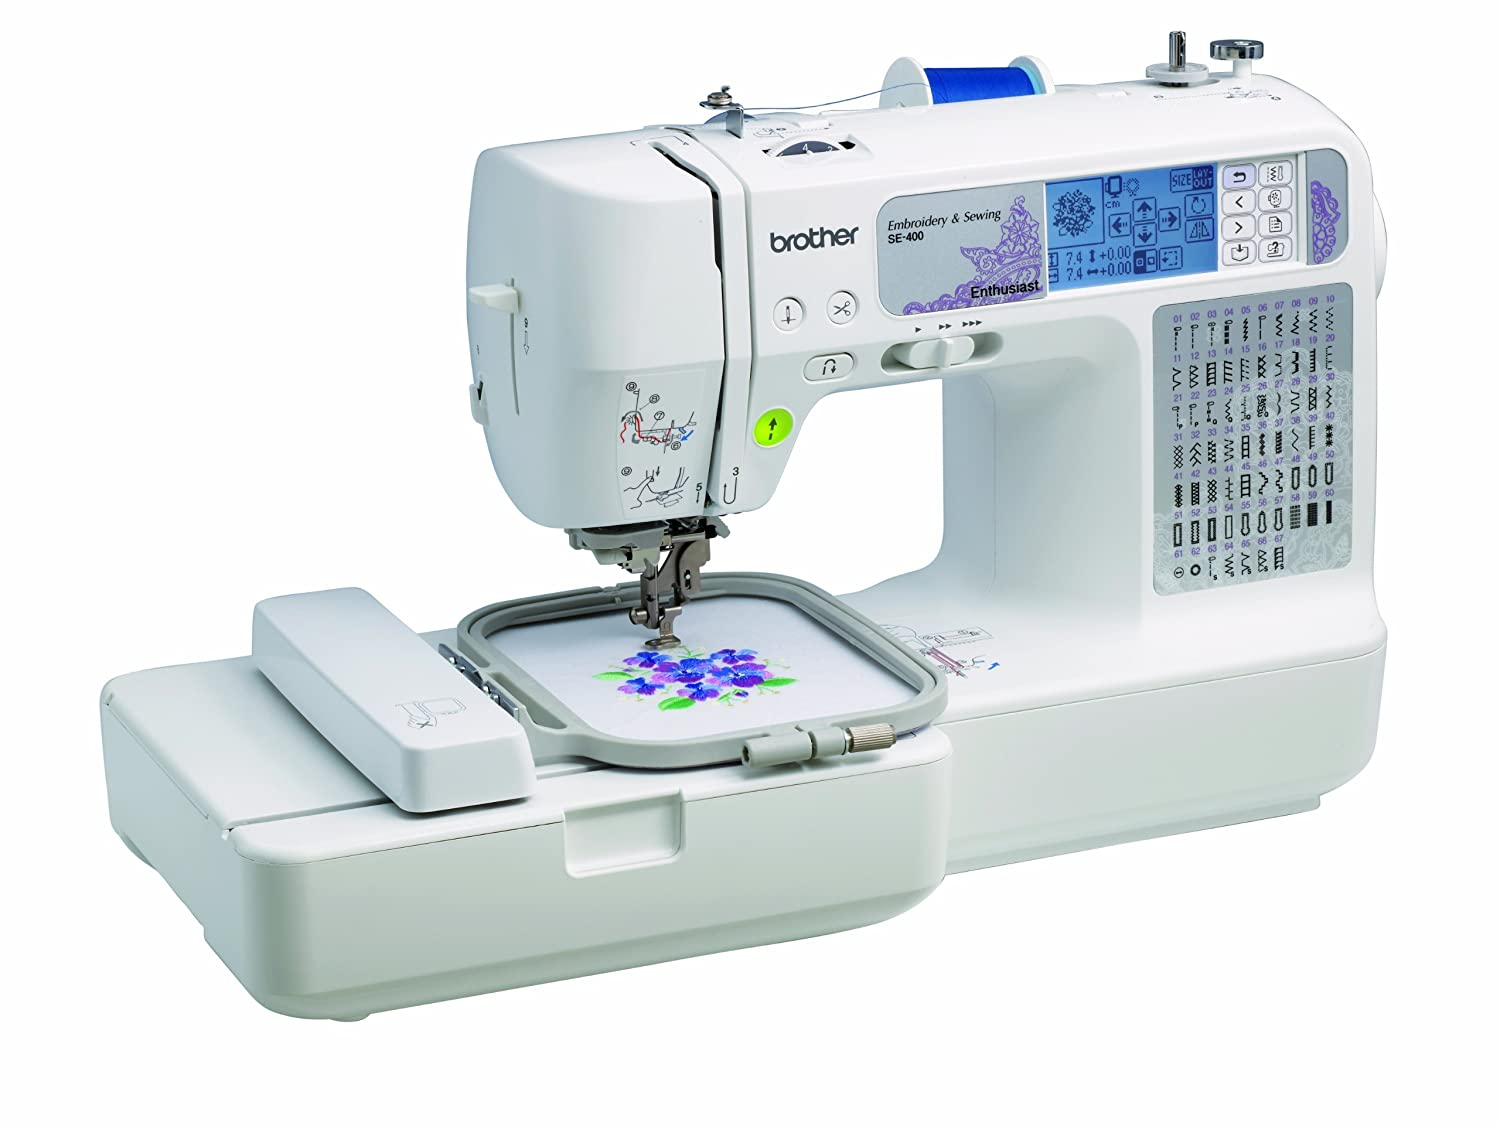 SE400 Sewing Machine by Brother